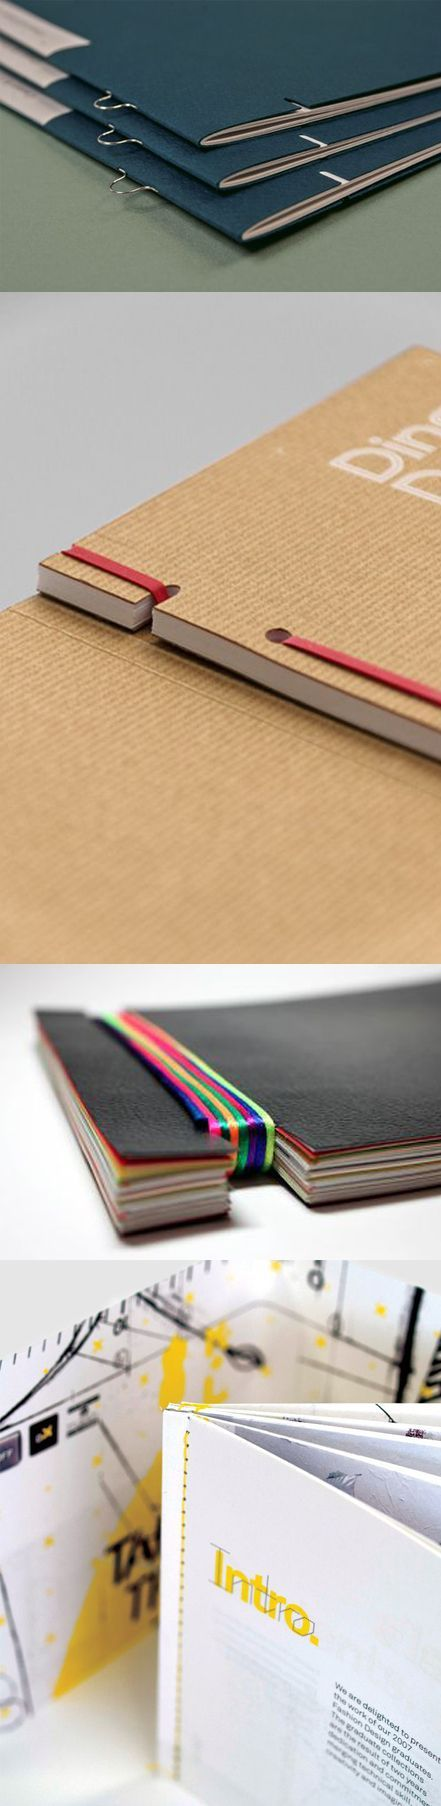 I love that there are so many ways you can create a book/journal and bind it with your own creative touch!